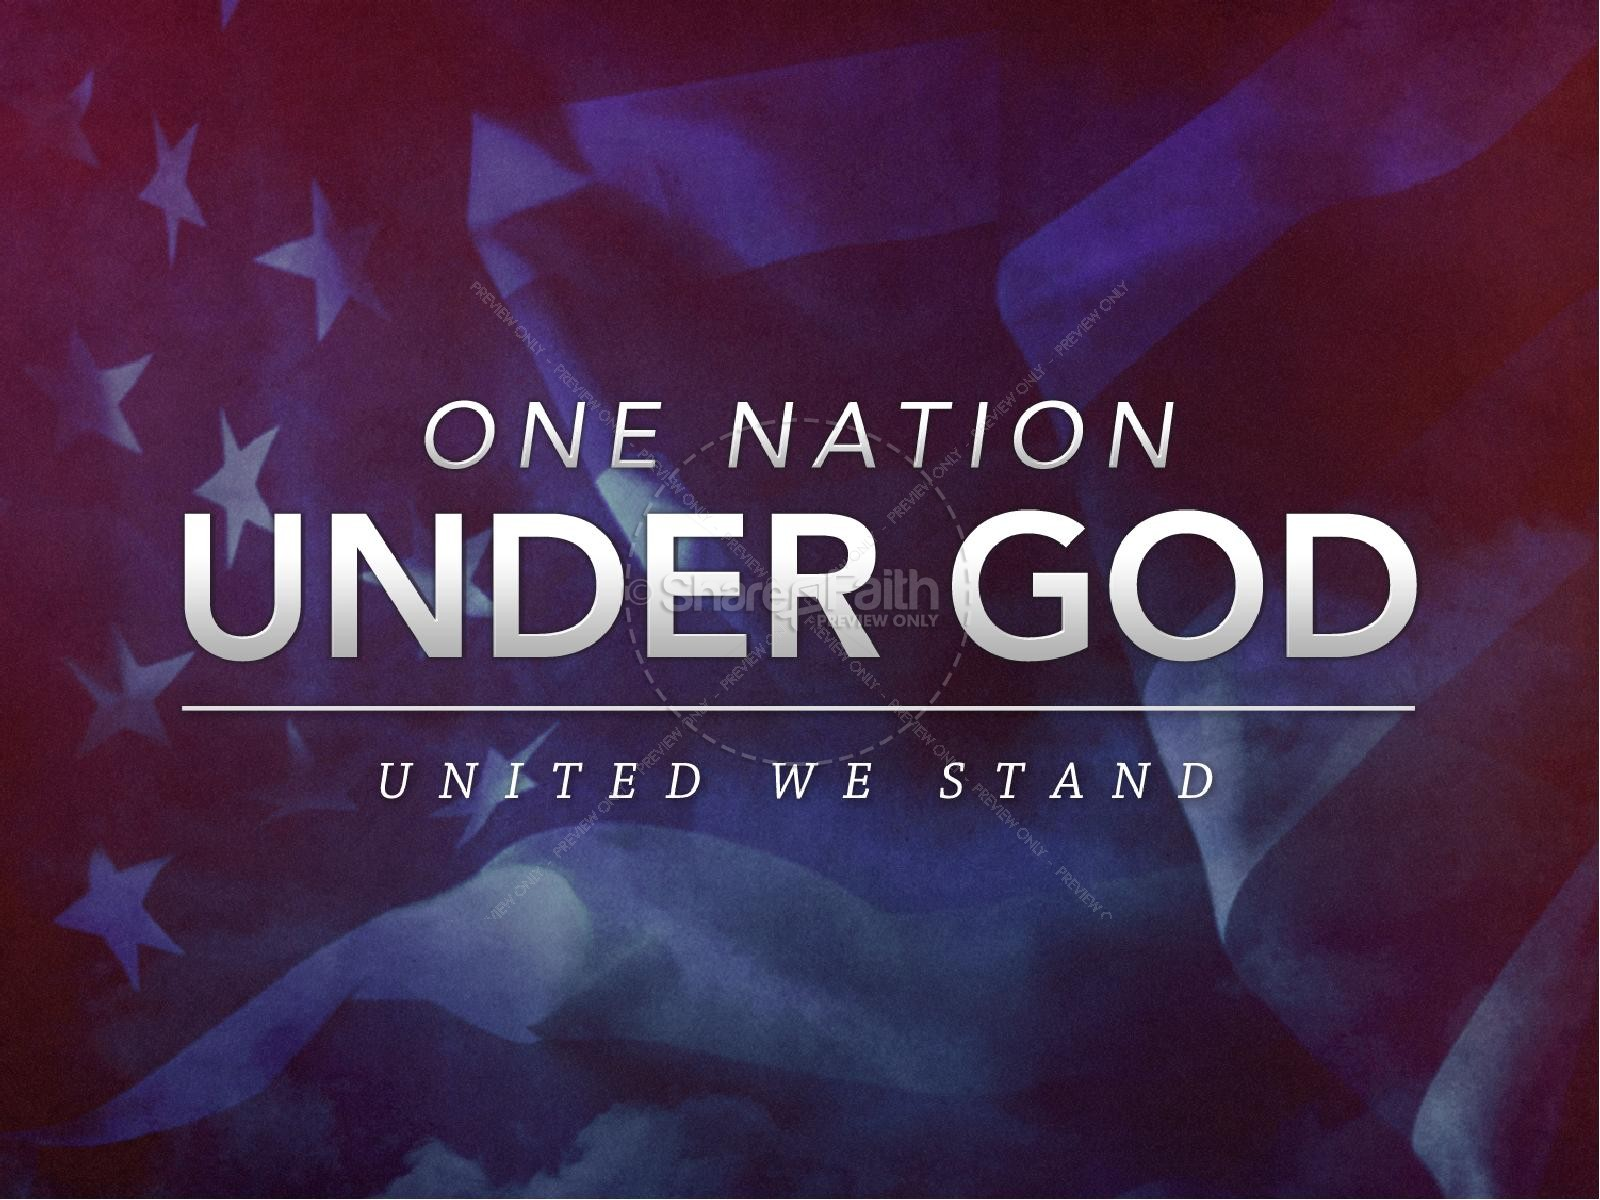 Christian Wallpaper Fall Offering One Nation Under God United We Stand Church Powerpoint